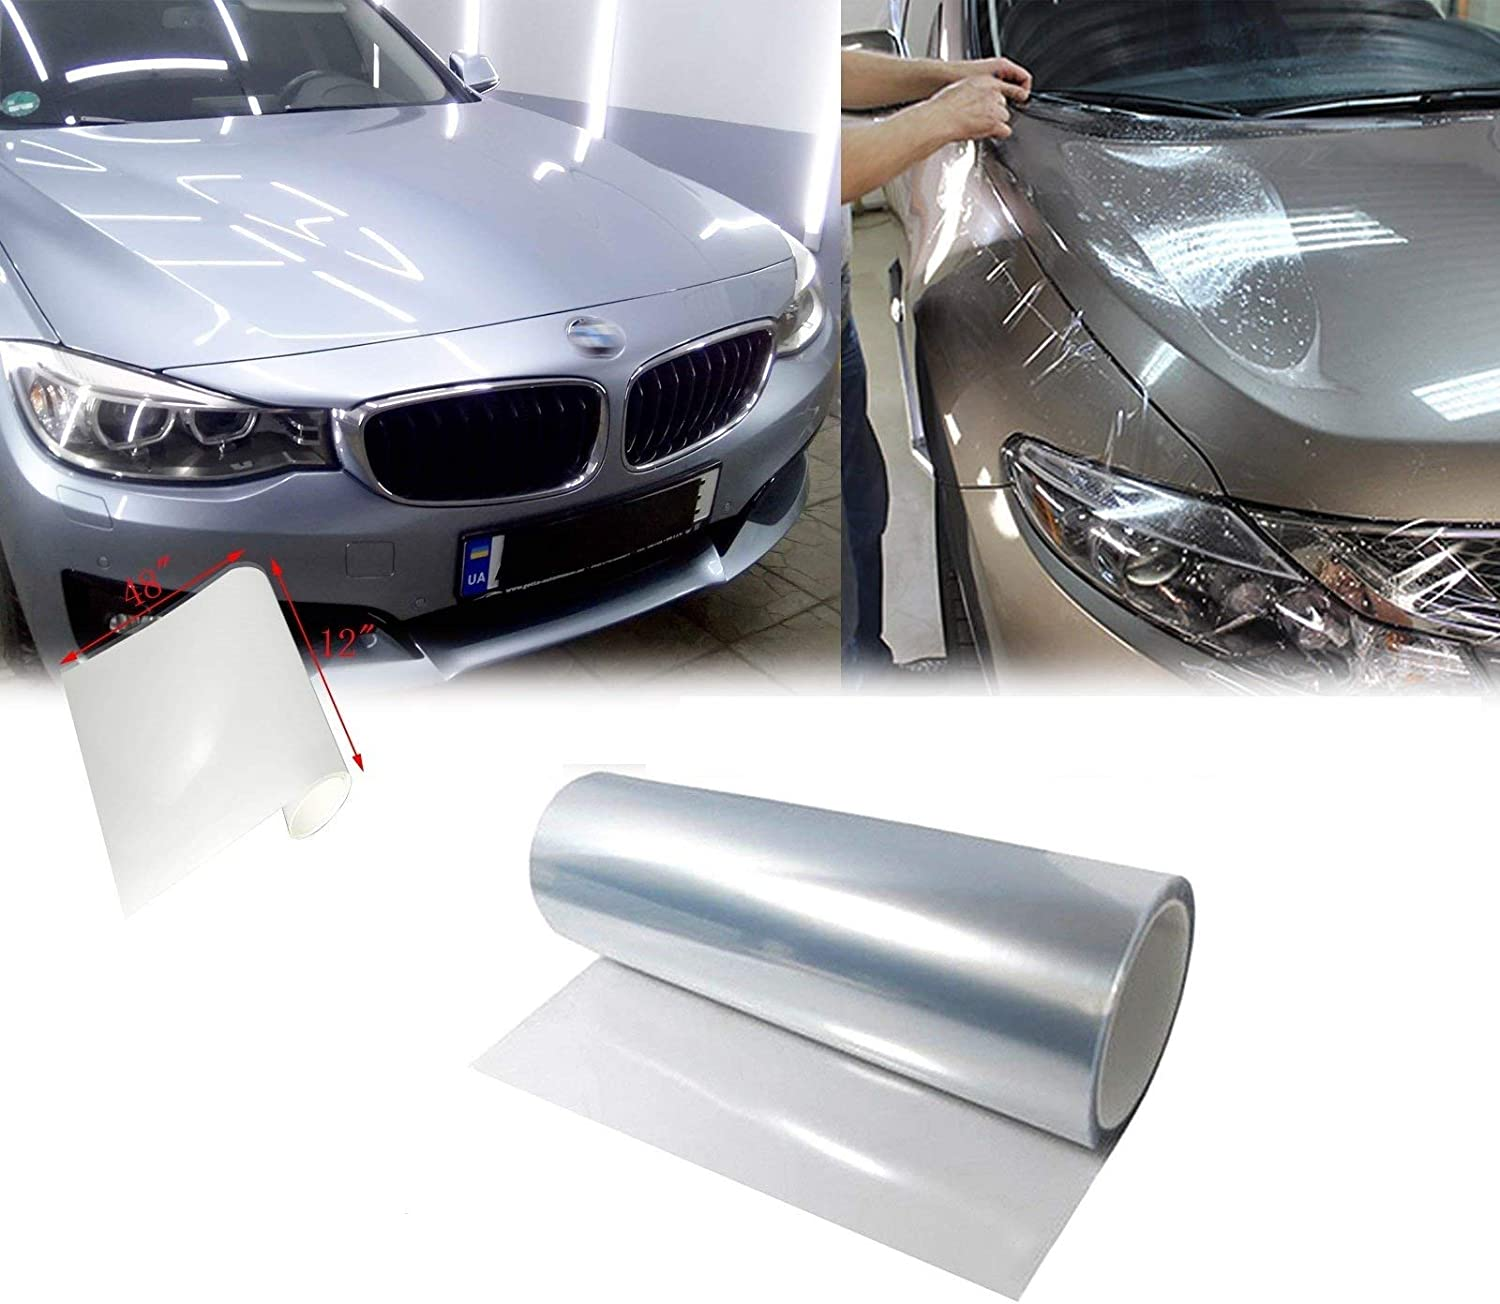 HOHOFILM 2Inch x 20Feet Clear Car Paint Protection Vinyl Film Clear Bra Headlight Bumper Hood Paint Protection Guard Film Anti-Scratch for Door Sill Guard Vinyl Wrap